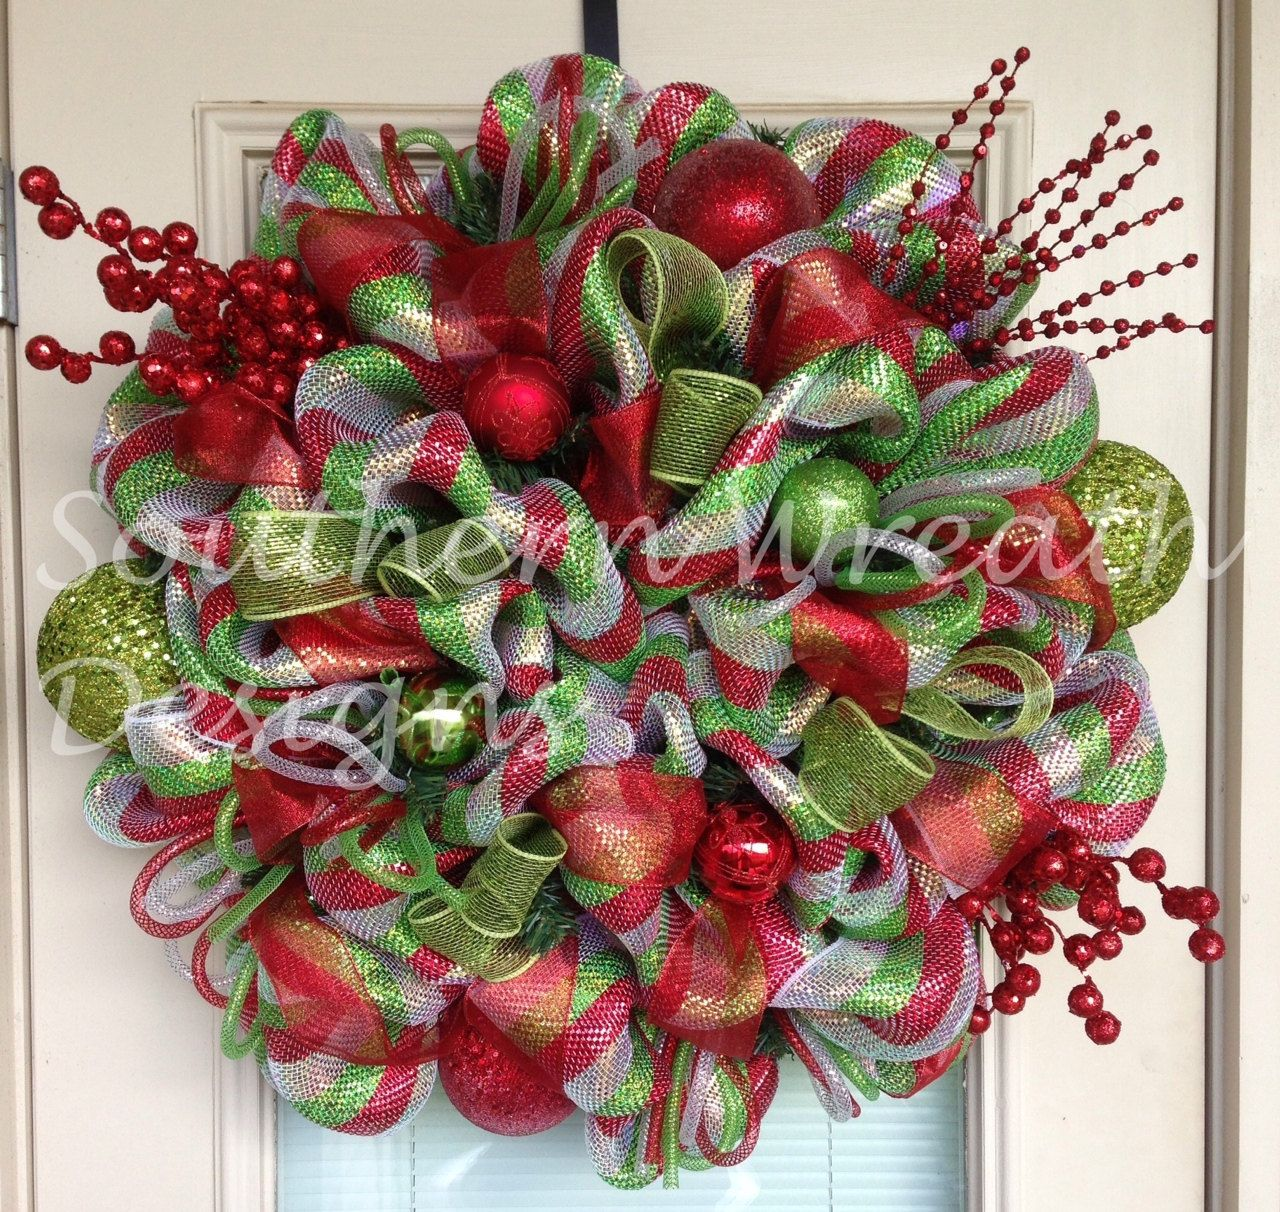 How to make a christmas wreath with mesh - Diy And Crafts Christmas Wreaths Red Silver And Green Deco Mesh Christmas Wreath